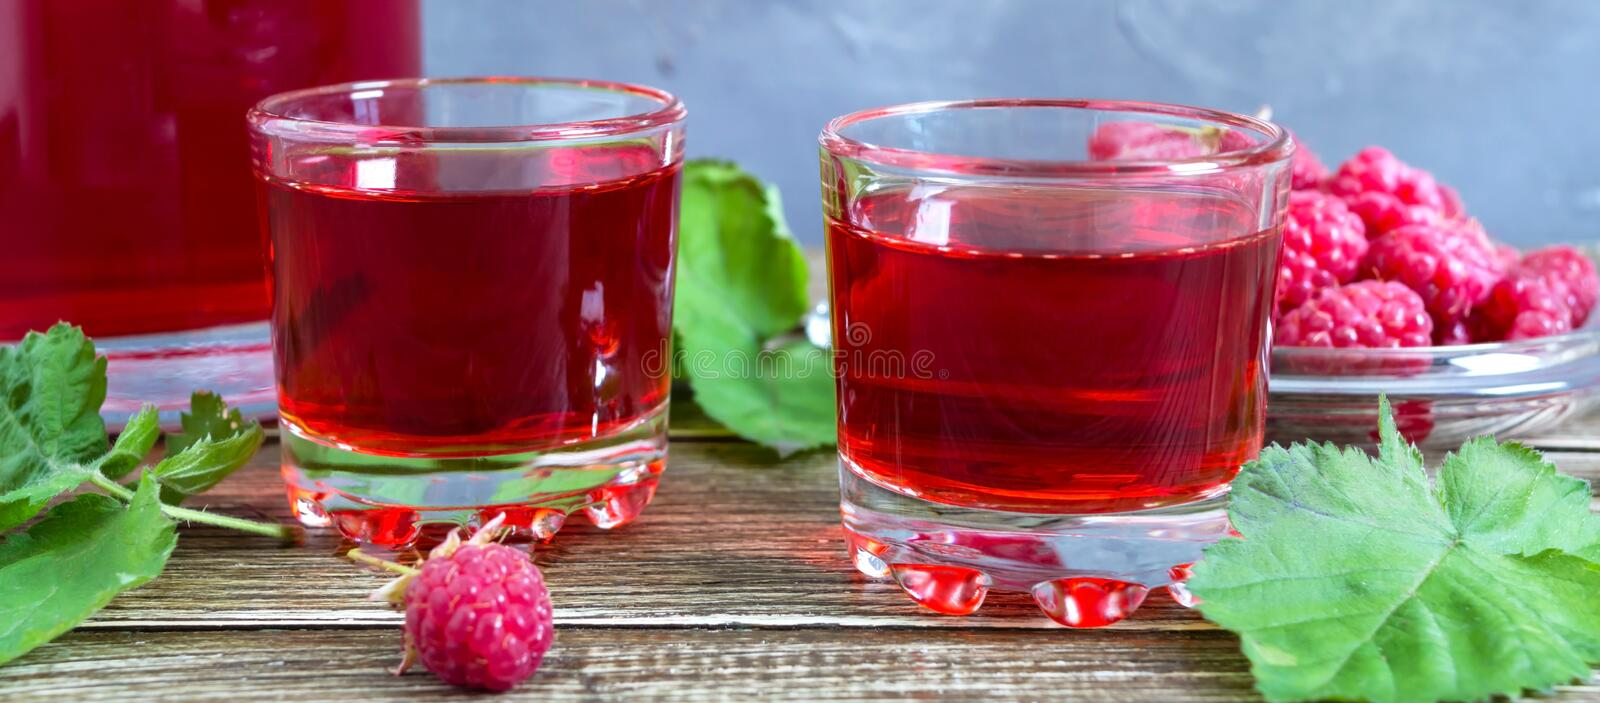 Raspberry liqueur in glass, fresh natural ripe organic berries and green leaves on a rustic wood background. Alcoholic flavored royalty free stock images